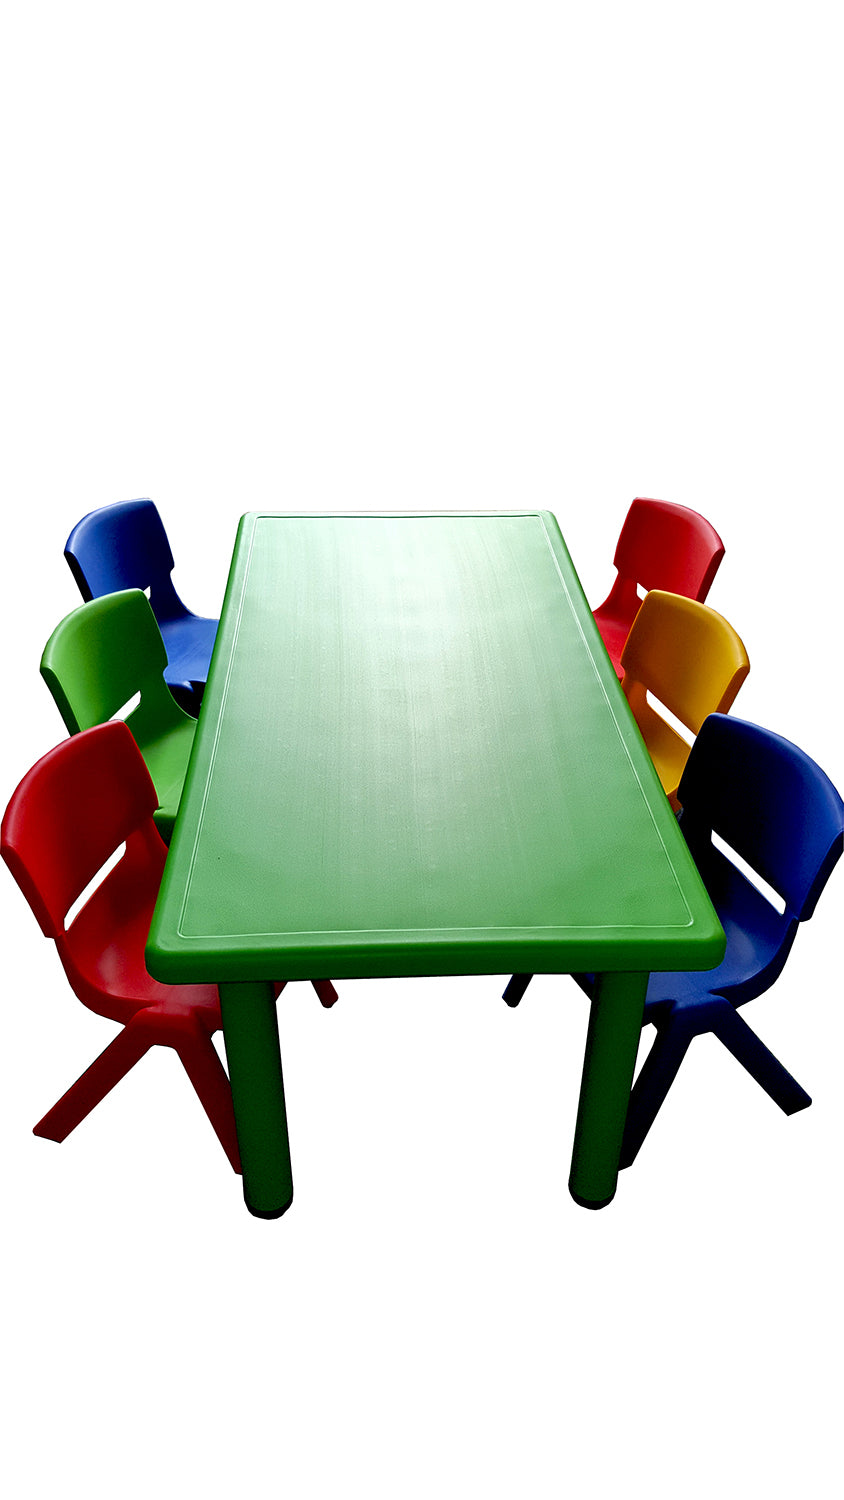 LARGE CHILDREN TODDLER KIDS ADJUSTABLE GREEN TABLE AND 6 COLOURED CHAIRS 120cmX60cm